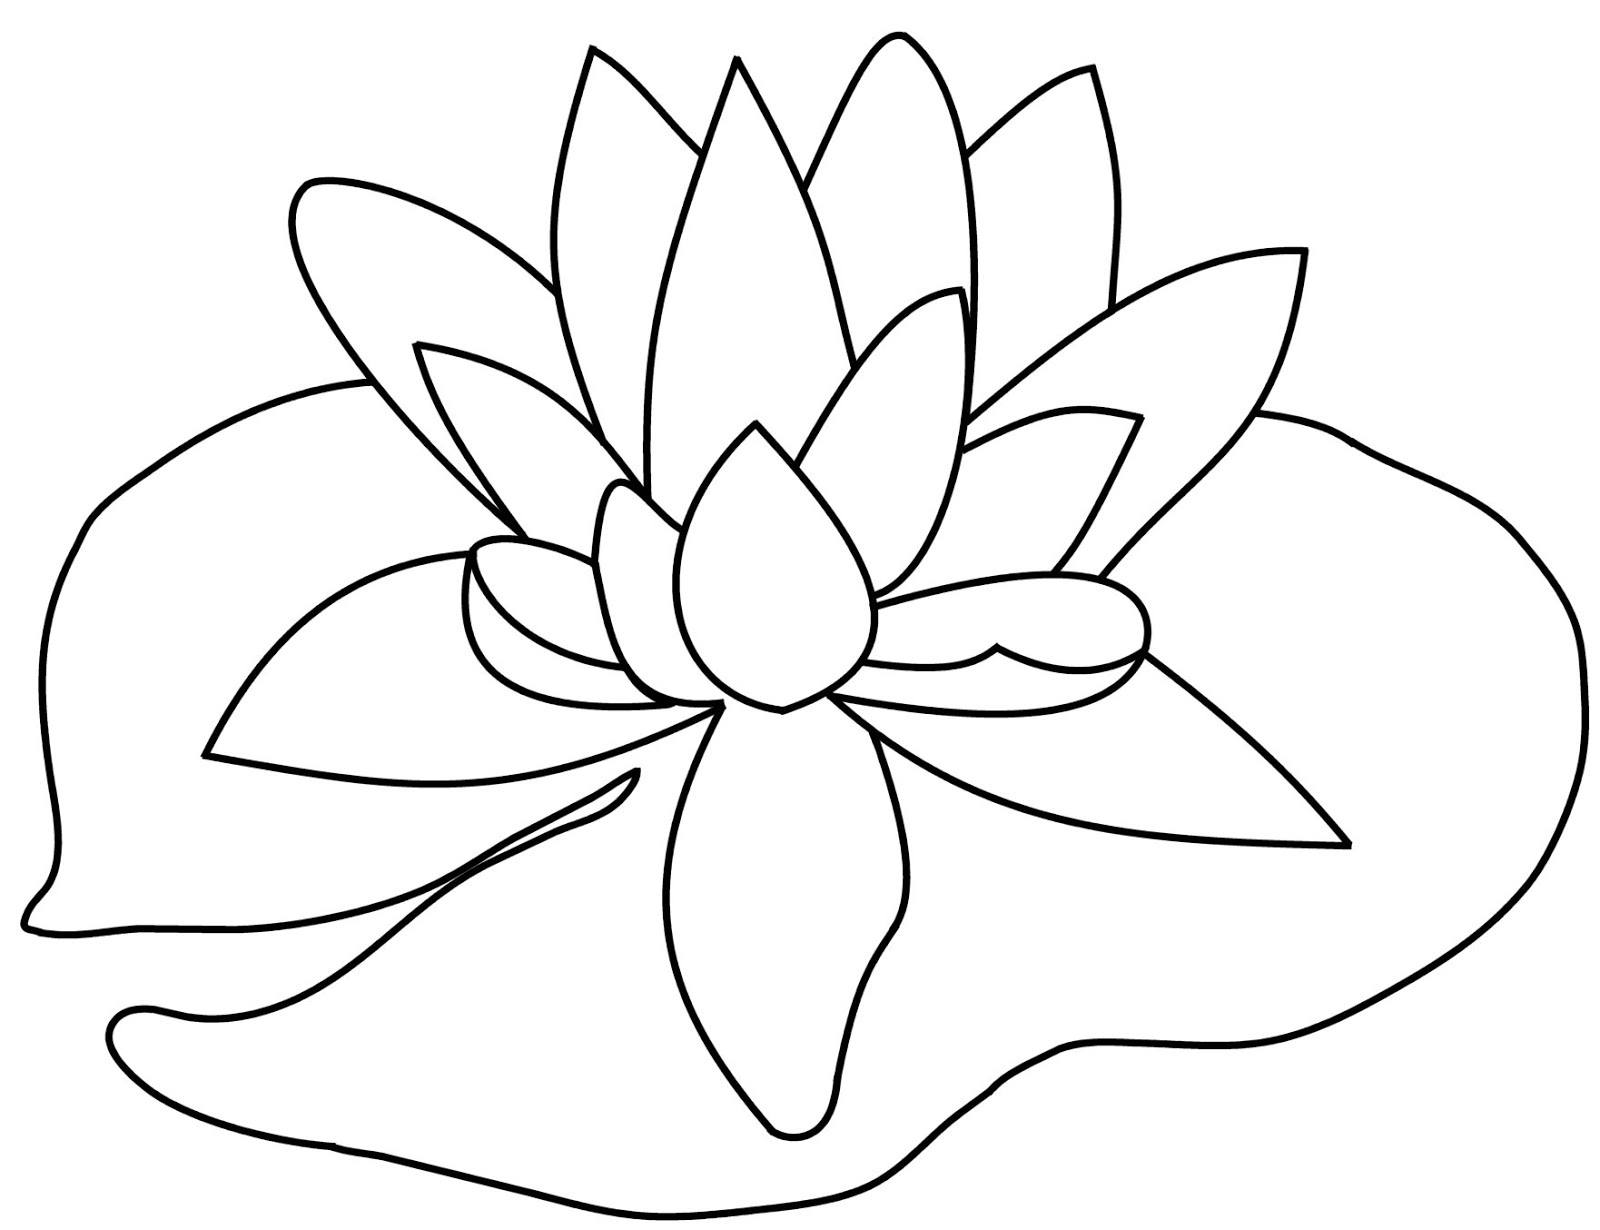 lily pad coloring printable lily pad coloring pages for kids cool2bkids pad lily coloring